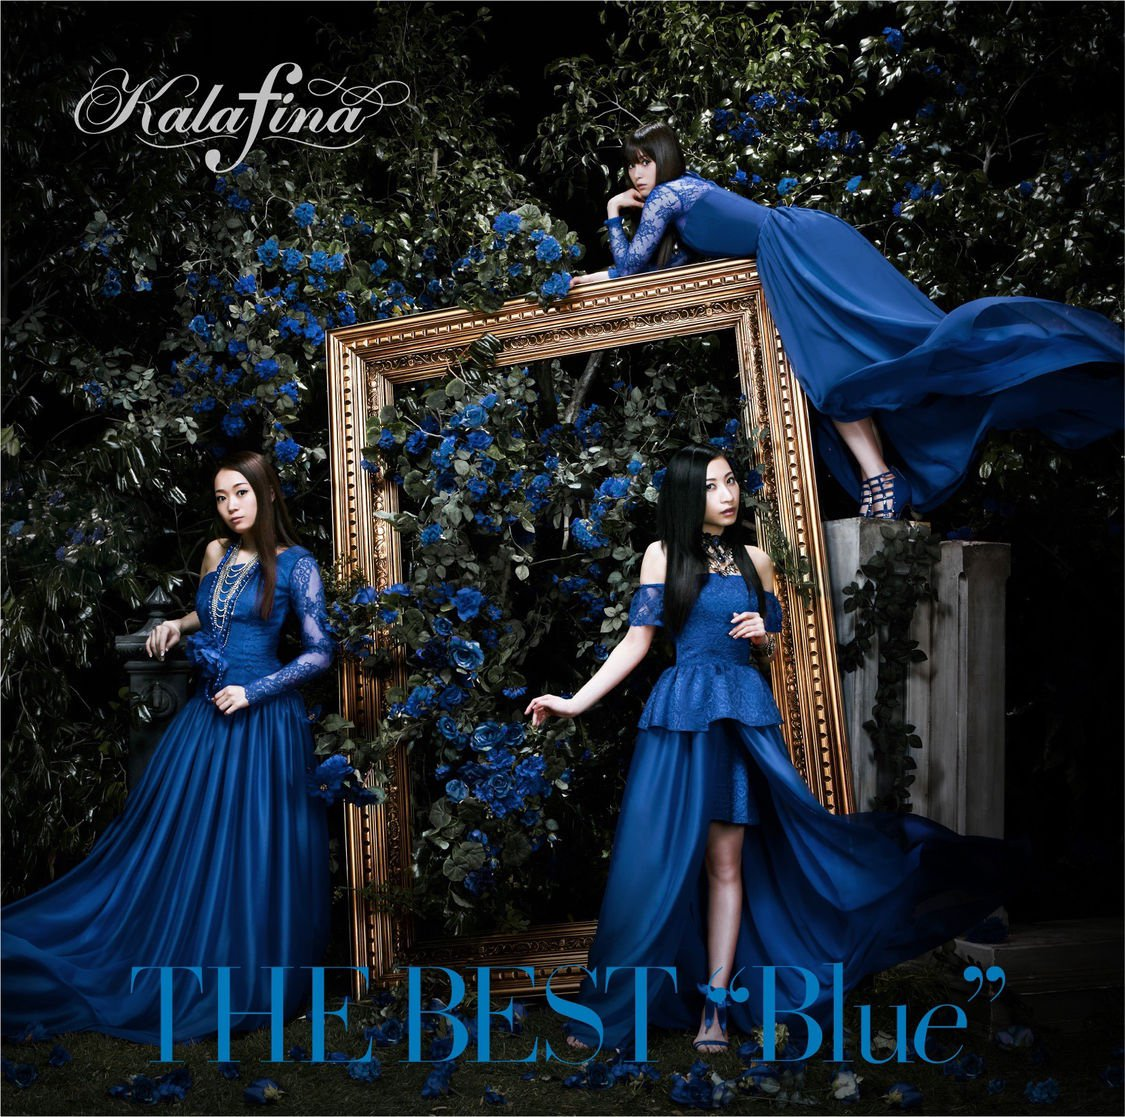 test ツイッターメディア - 満天 by Kalafina #NowPlaying https://t.co/L4j3mUE8WY